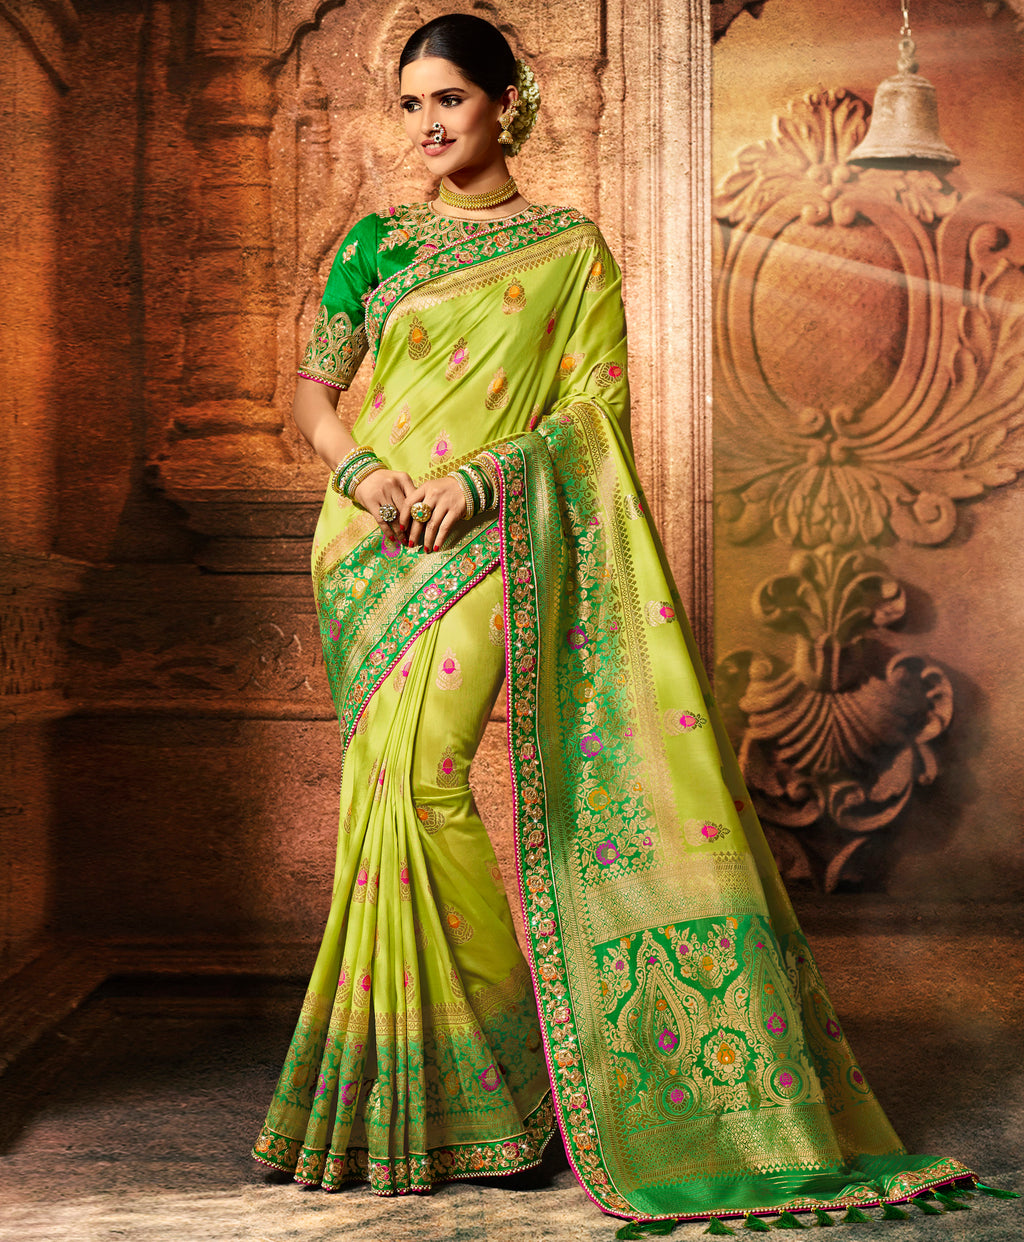 Lemon Green & Green Color Dola Viscose Silk Wedding Function Sarees NYF-8000